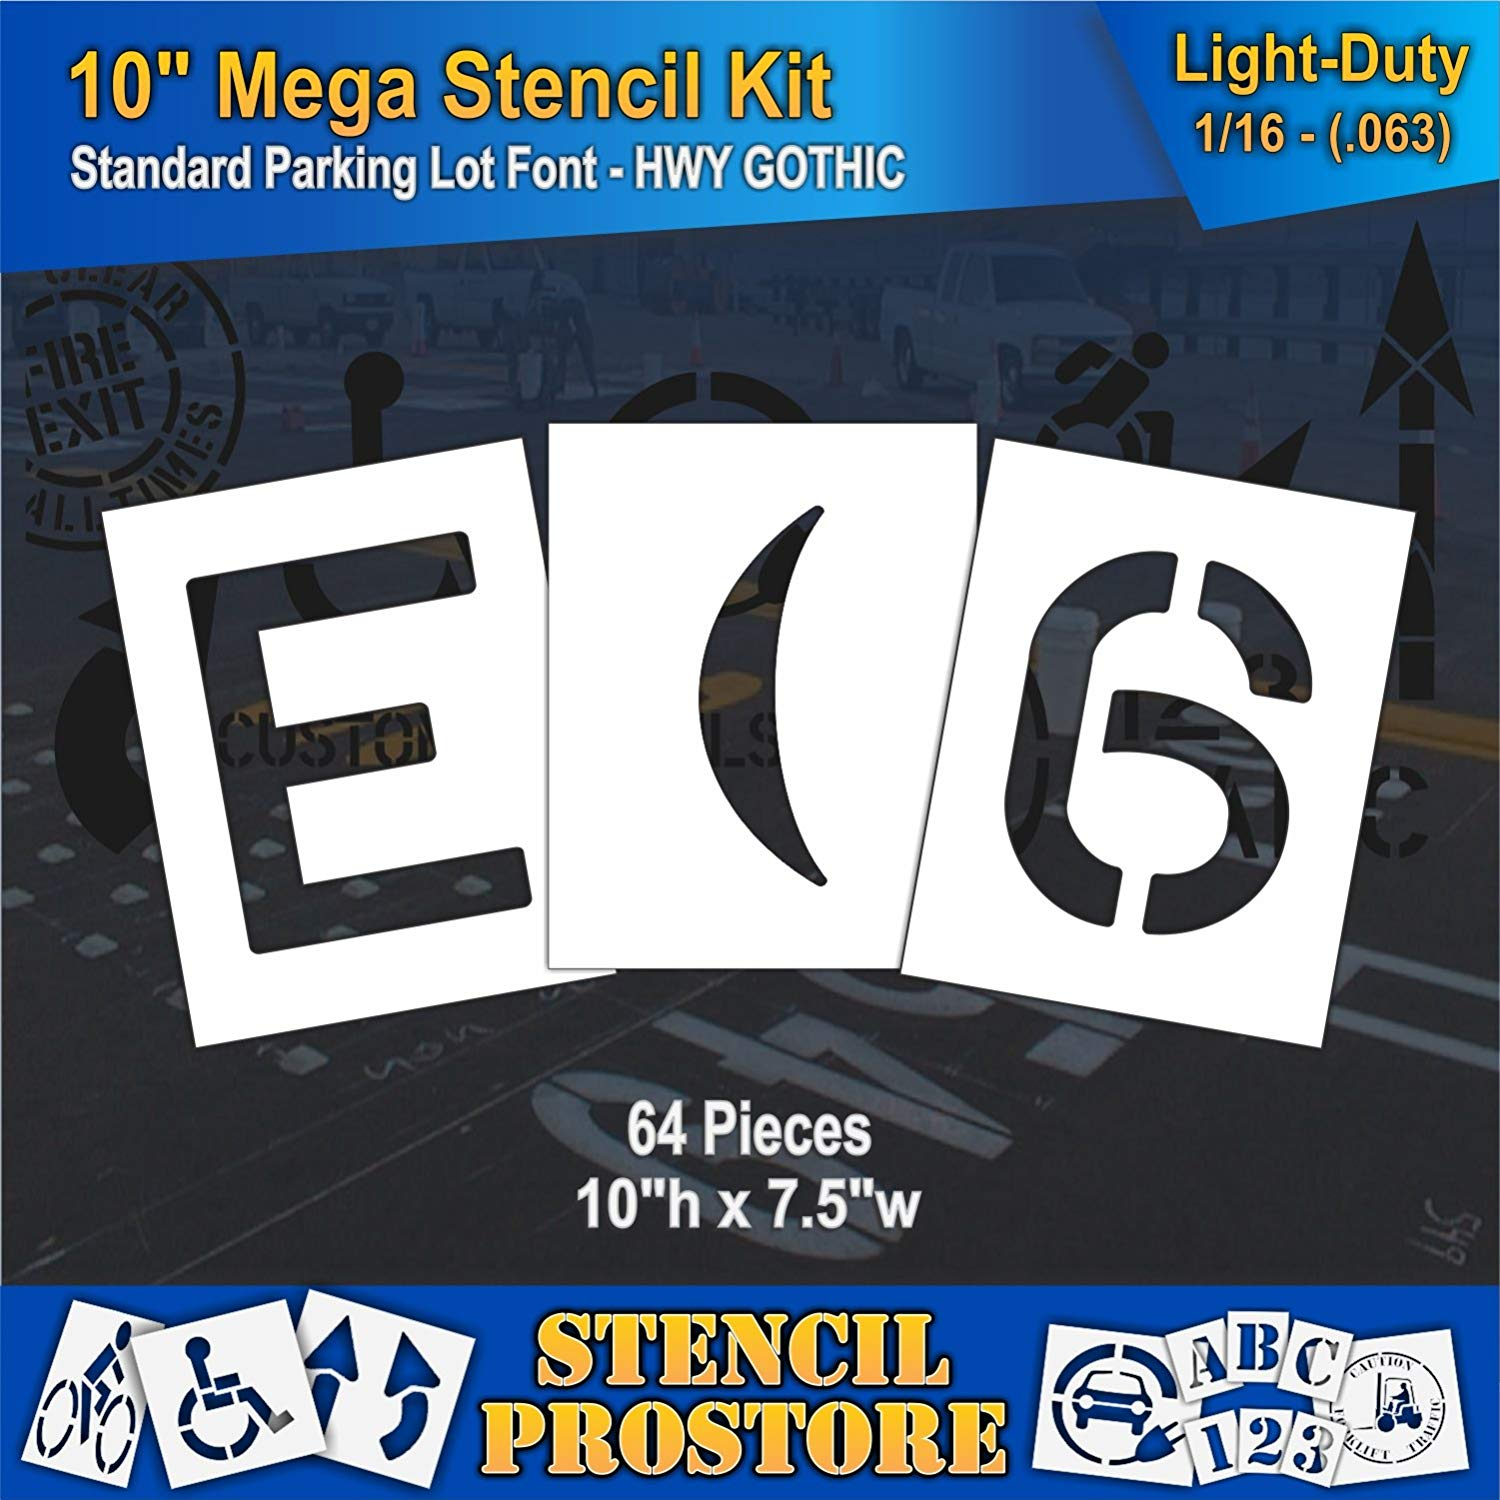 "Pavement Stencils -10 inch MEGA ALPHA/NUM SET - (64 Piece) - 10"" x 7.5"" x 1/16"" (63 mil) - Light-Duty"